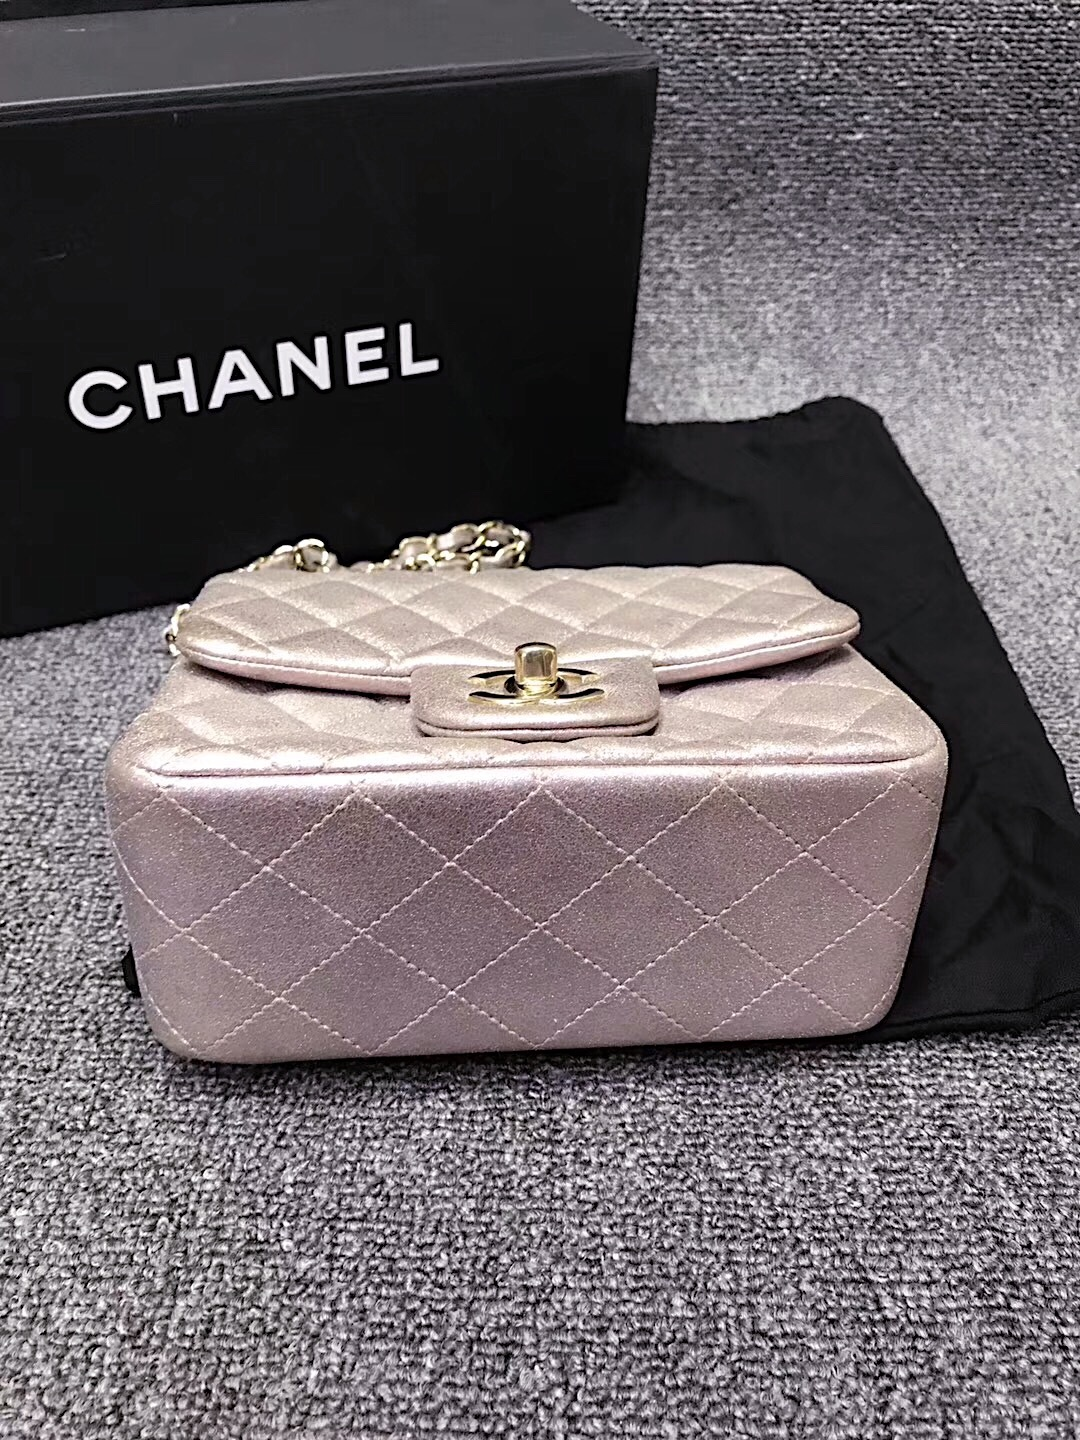 Authentic Chanel Iridescent Pink Quilted Leather Square Mini Flap Bag GHW